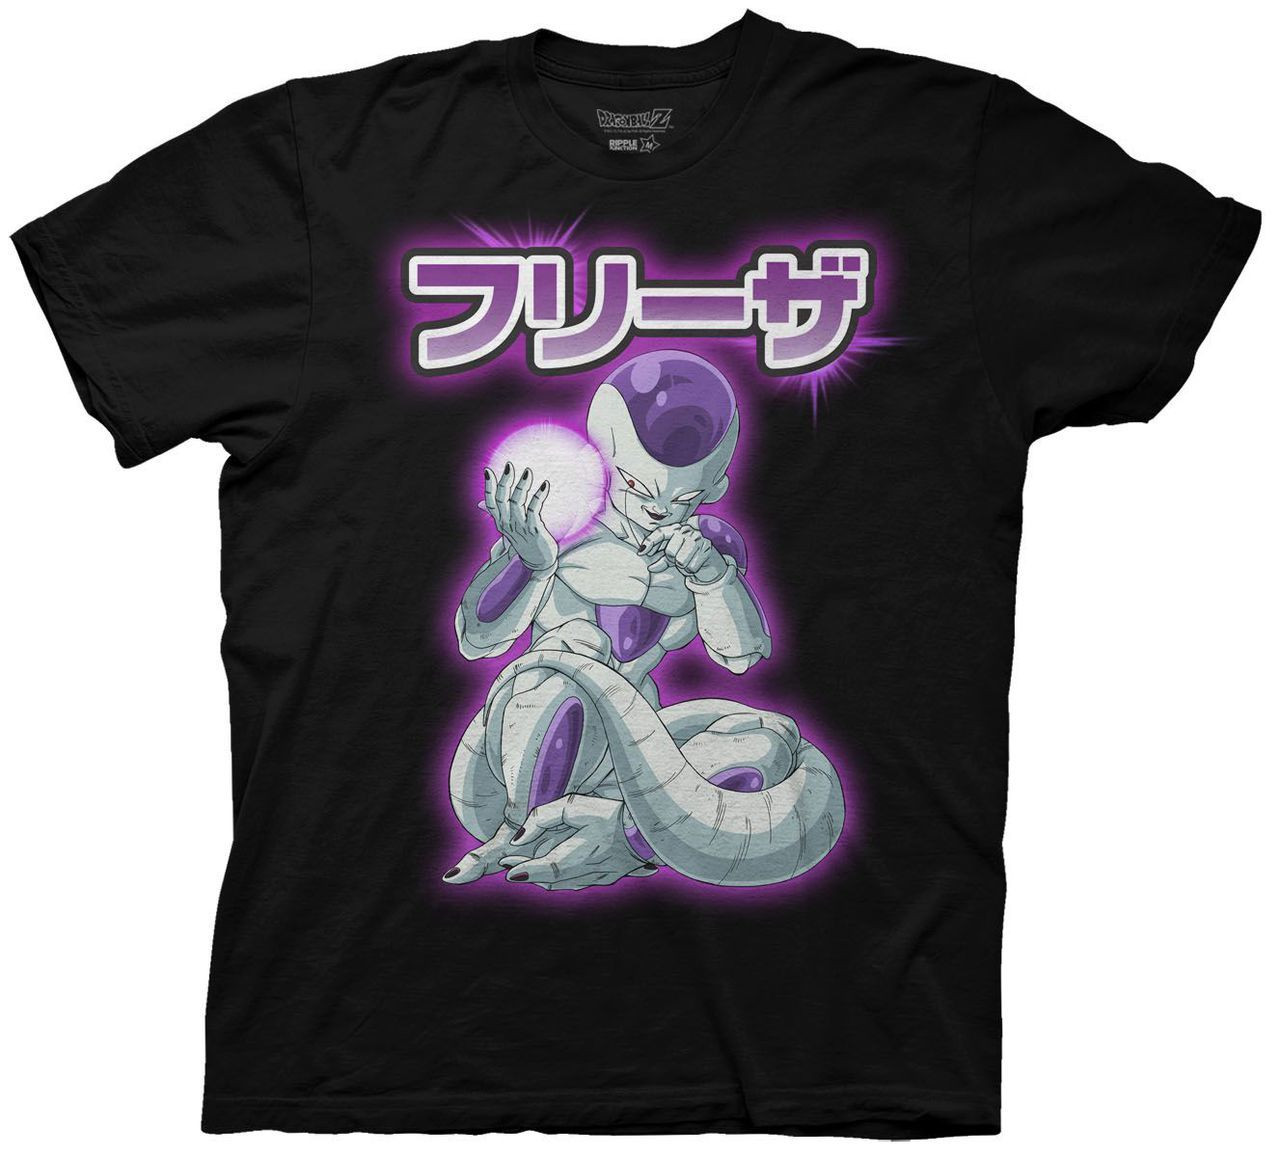 4e7a77a6 ... T-Shirt - Frieza Glow. Loading zoom. Hover over image to zoom